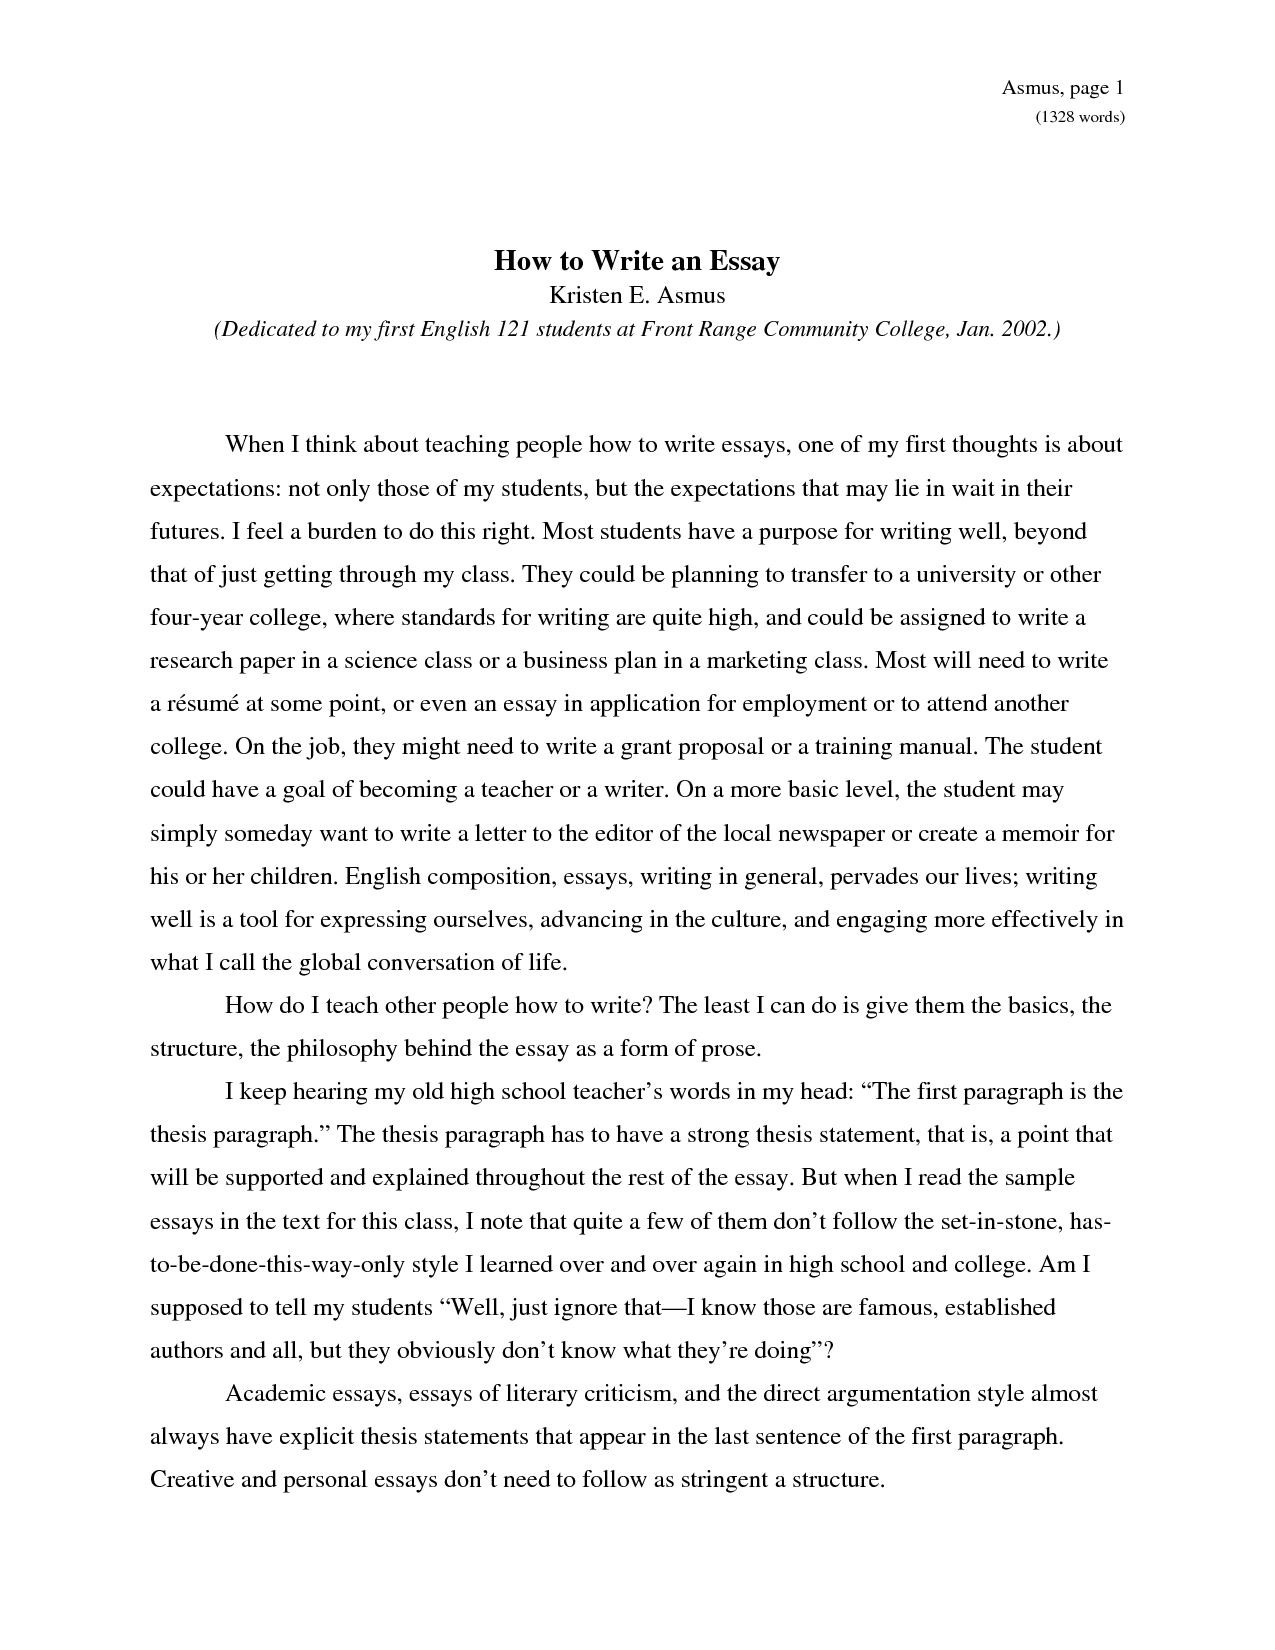 good artists to write an essay on Need a unique, good and interesting personal essay topic to write about we have come up with 100 cool topic ideas for college students.